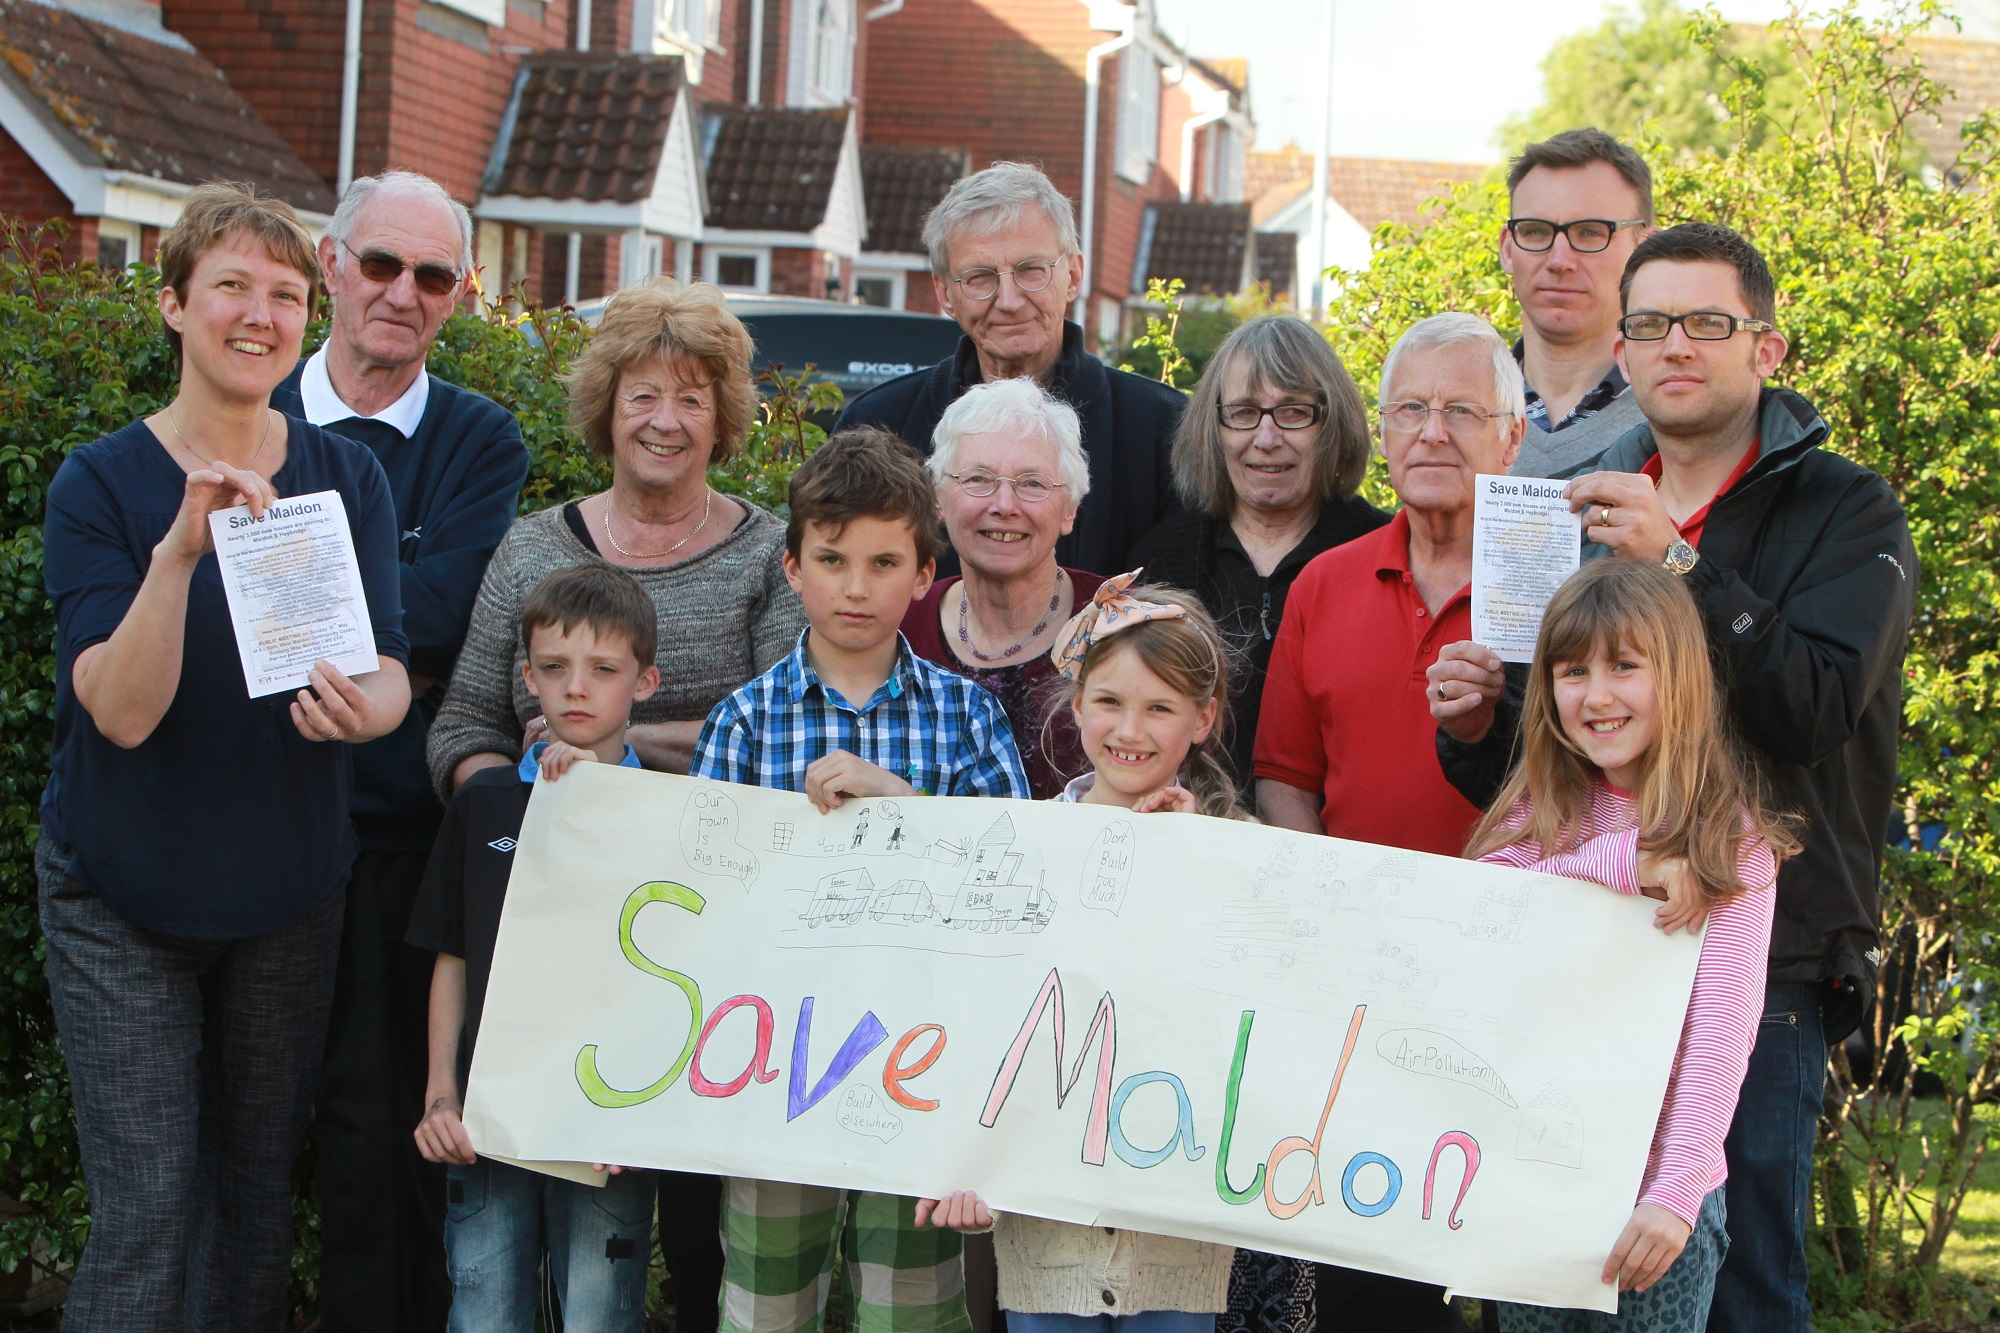 The Save Maldon Action Group has also launched a petition